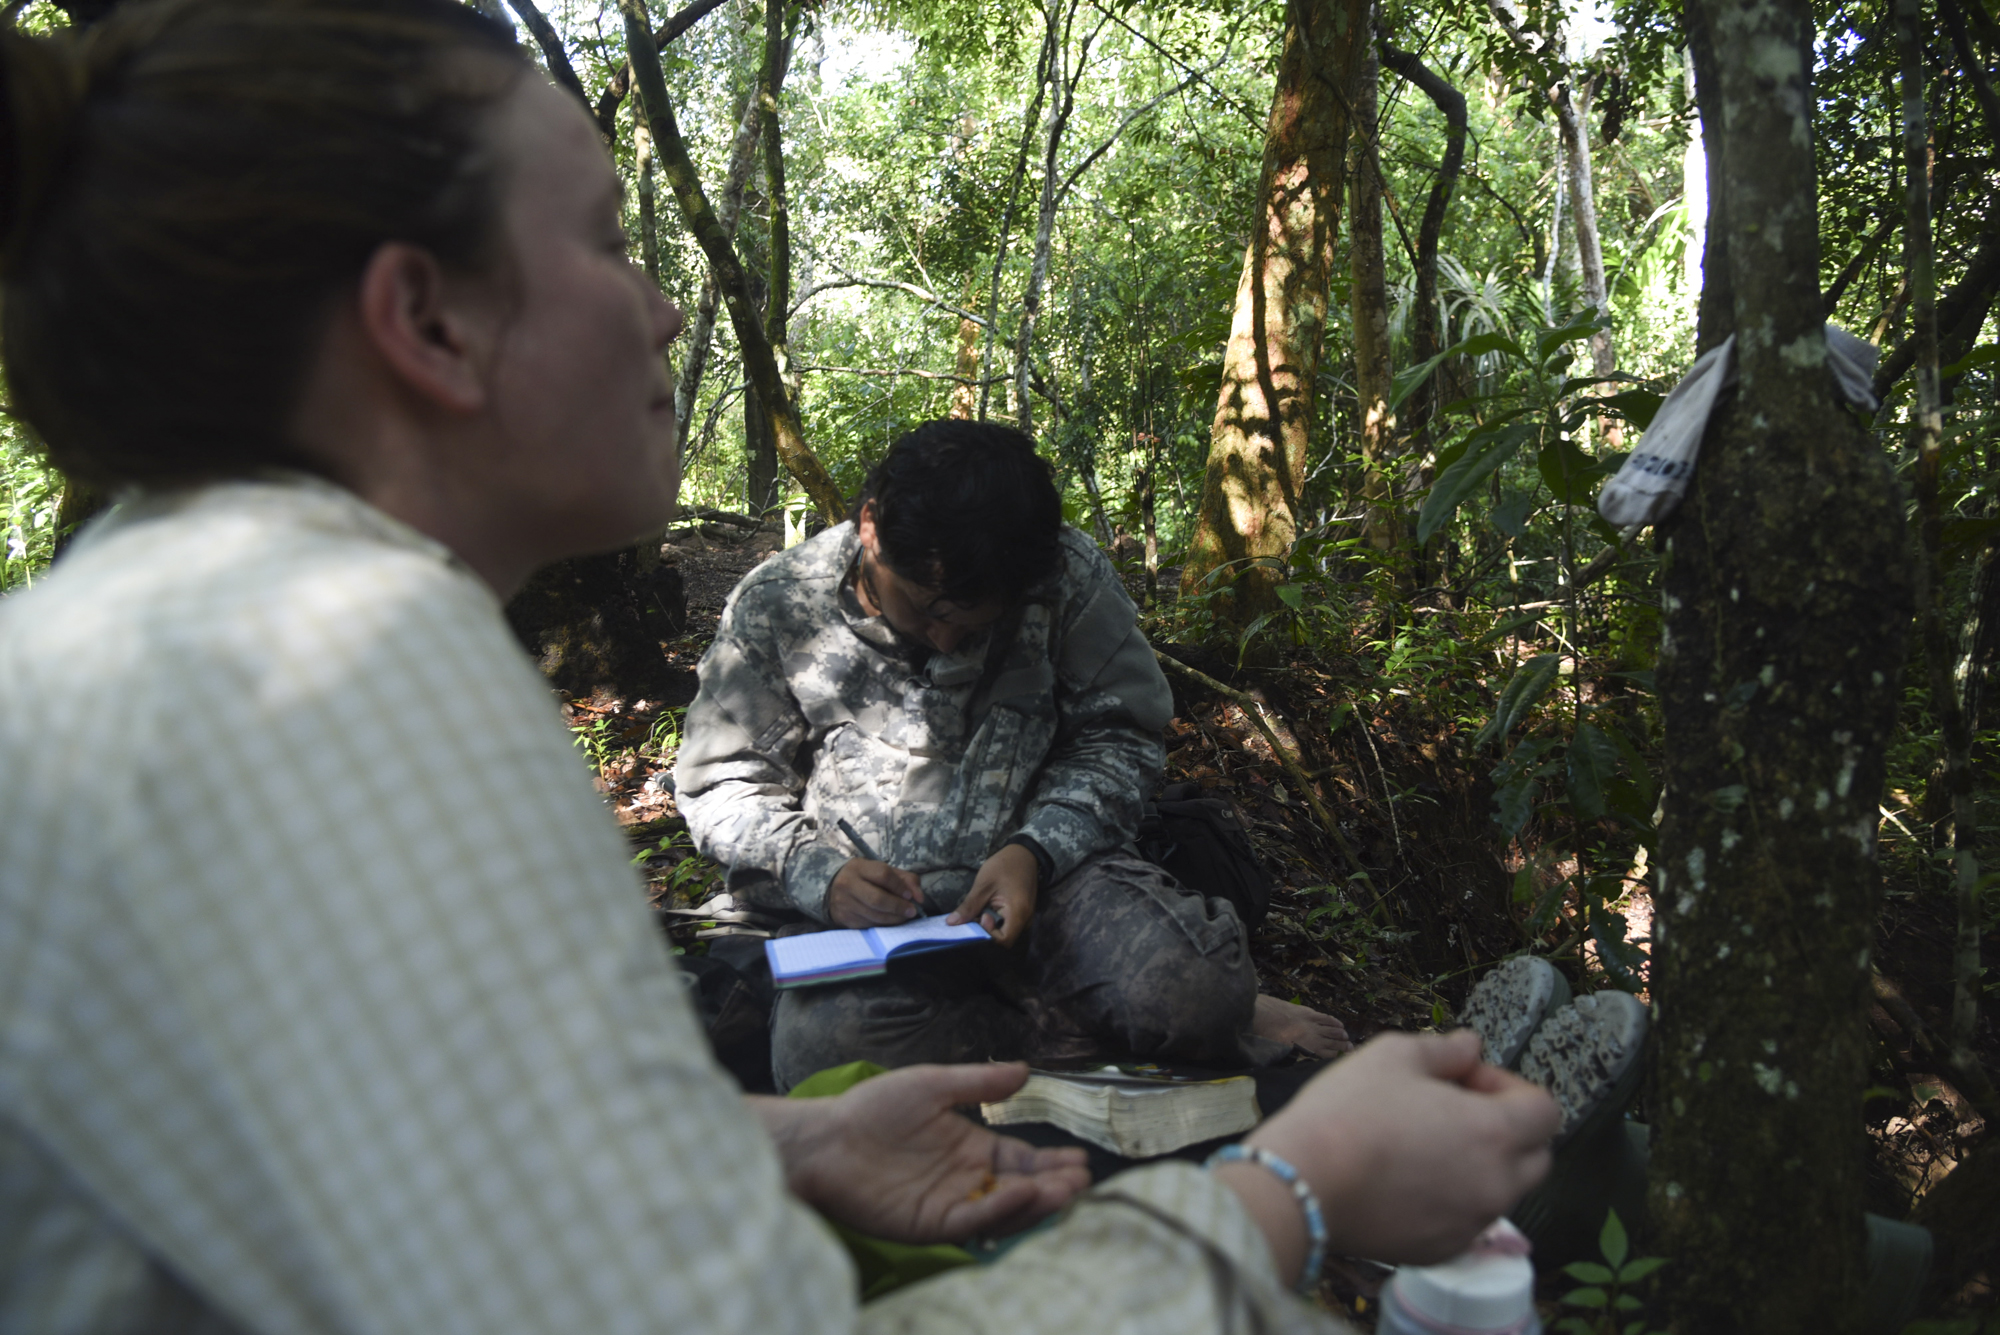 Maisie snacks while Yohamir takes notes about his day's sightings in a small gallery forest.